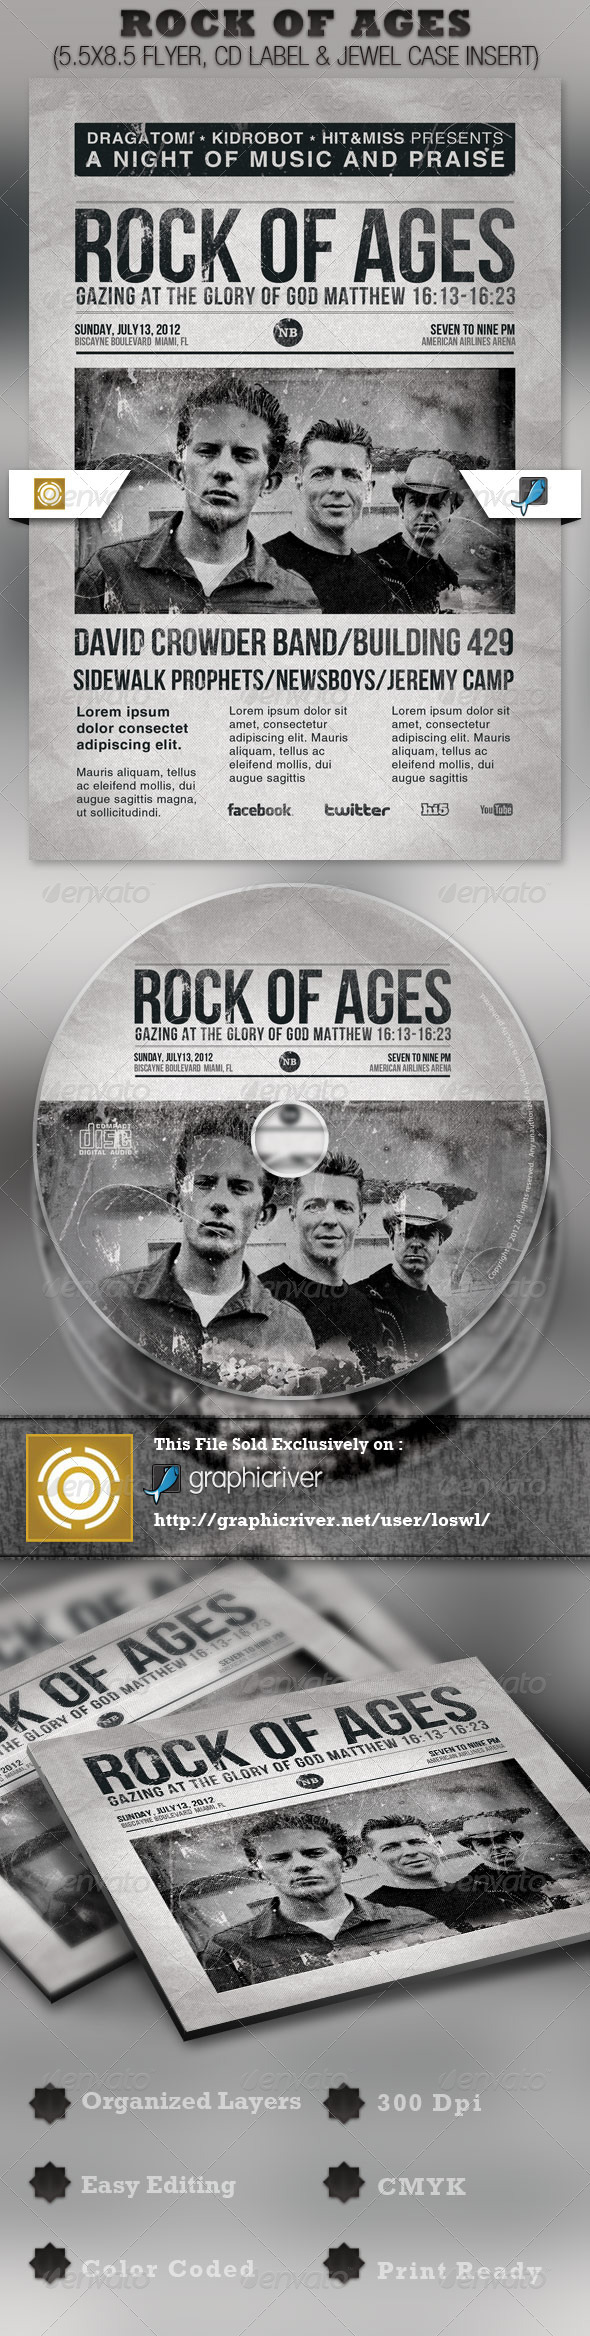 Rock of Ages Church Flyer and CD Template | Gospel concert, Cd ...